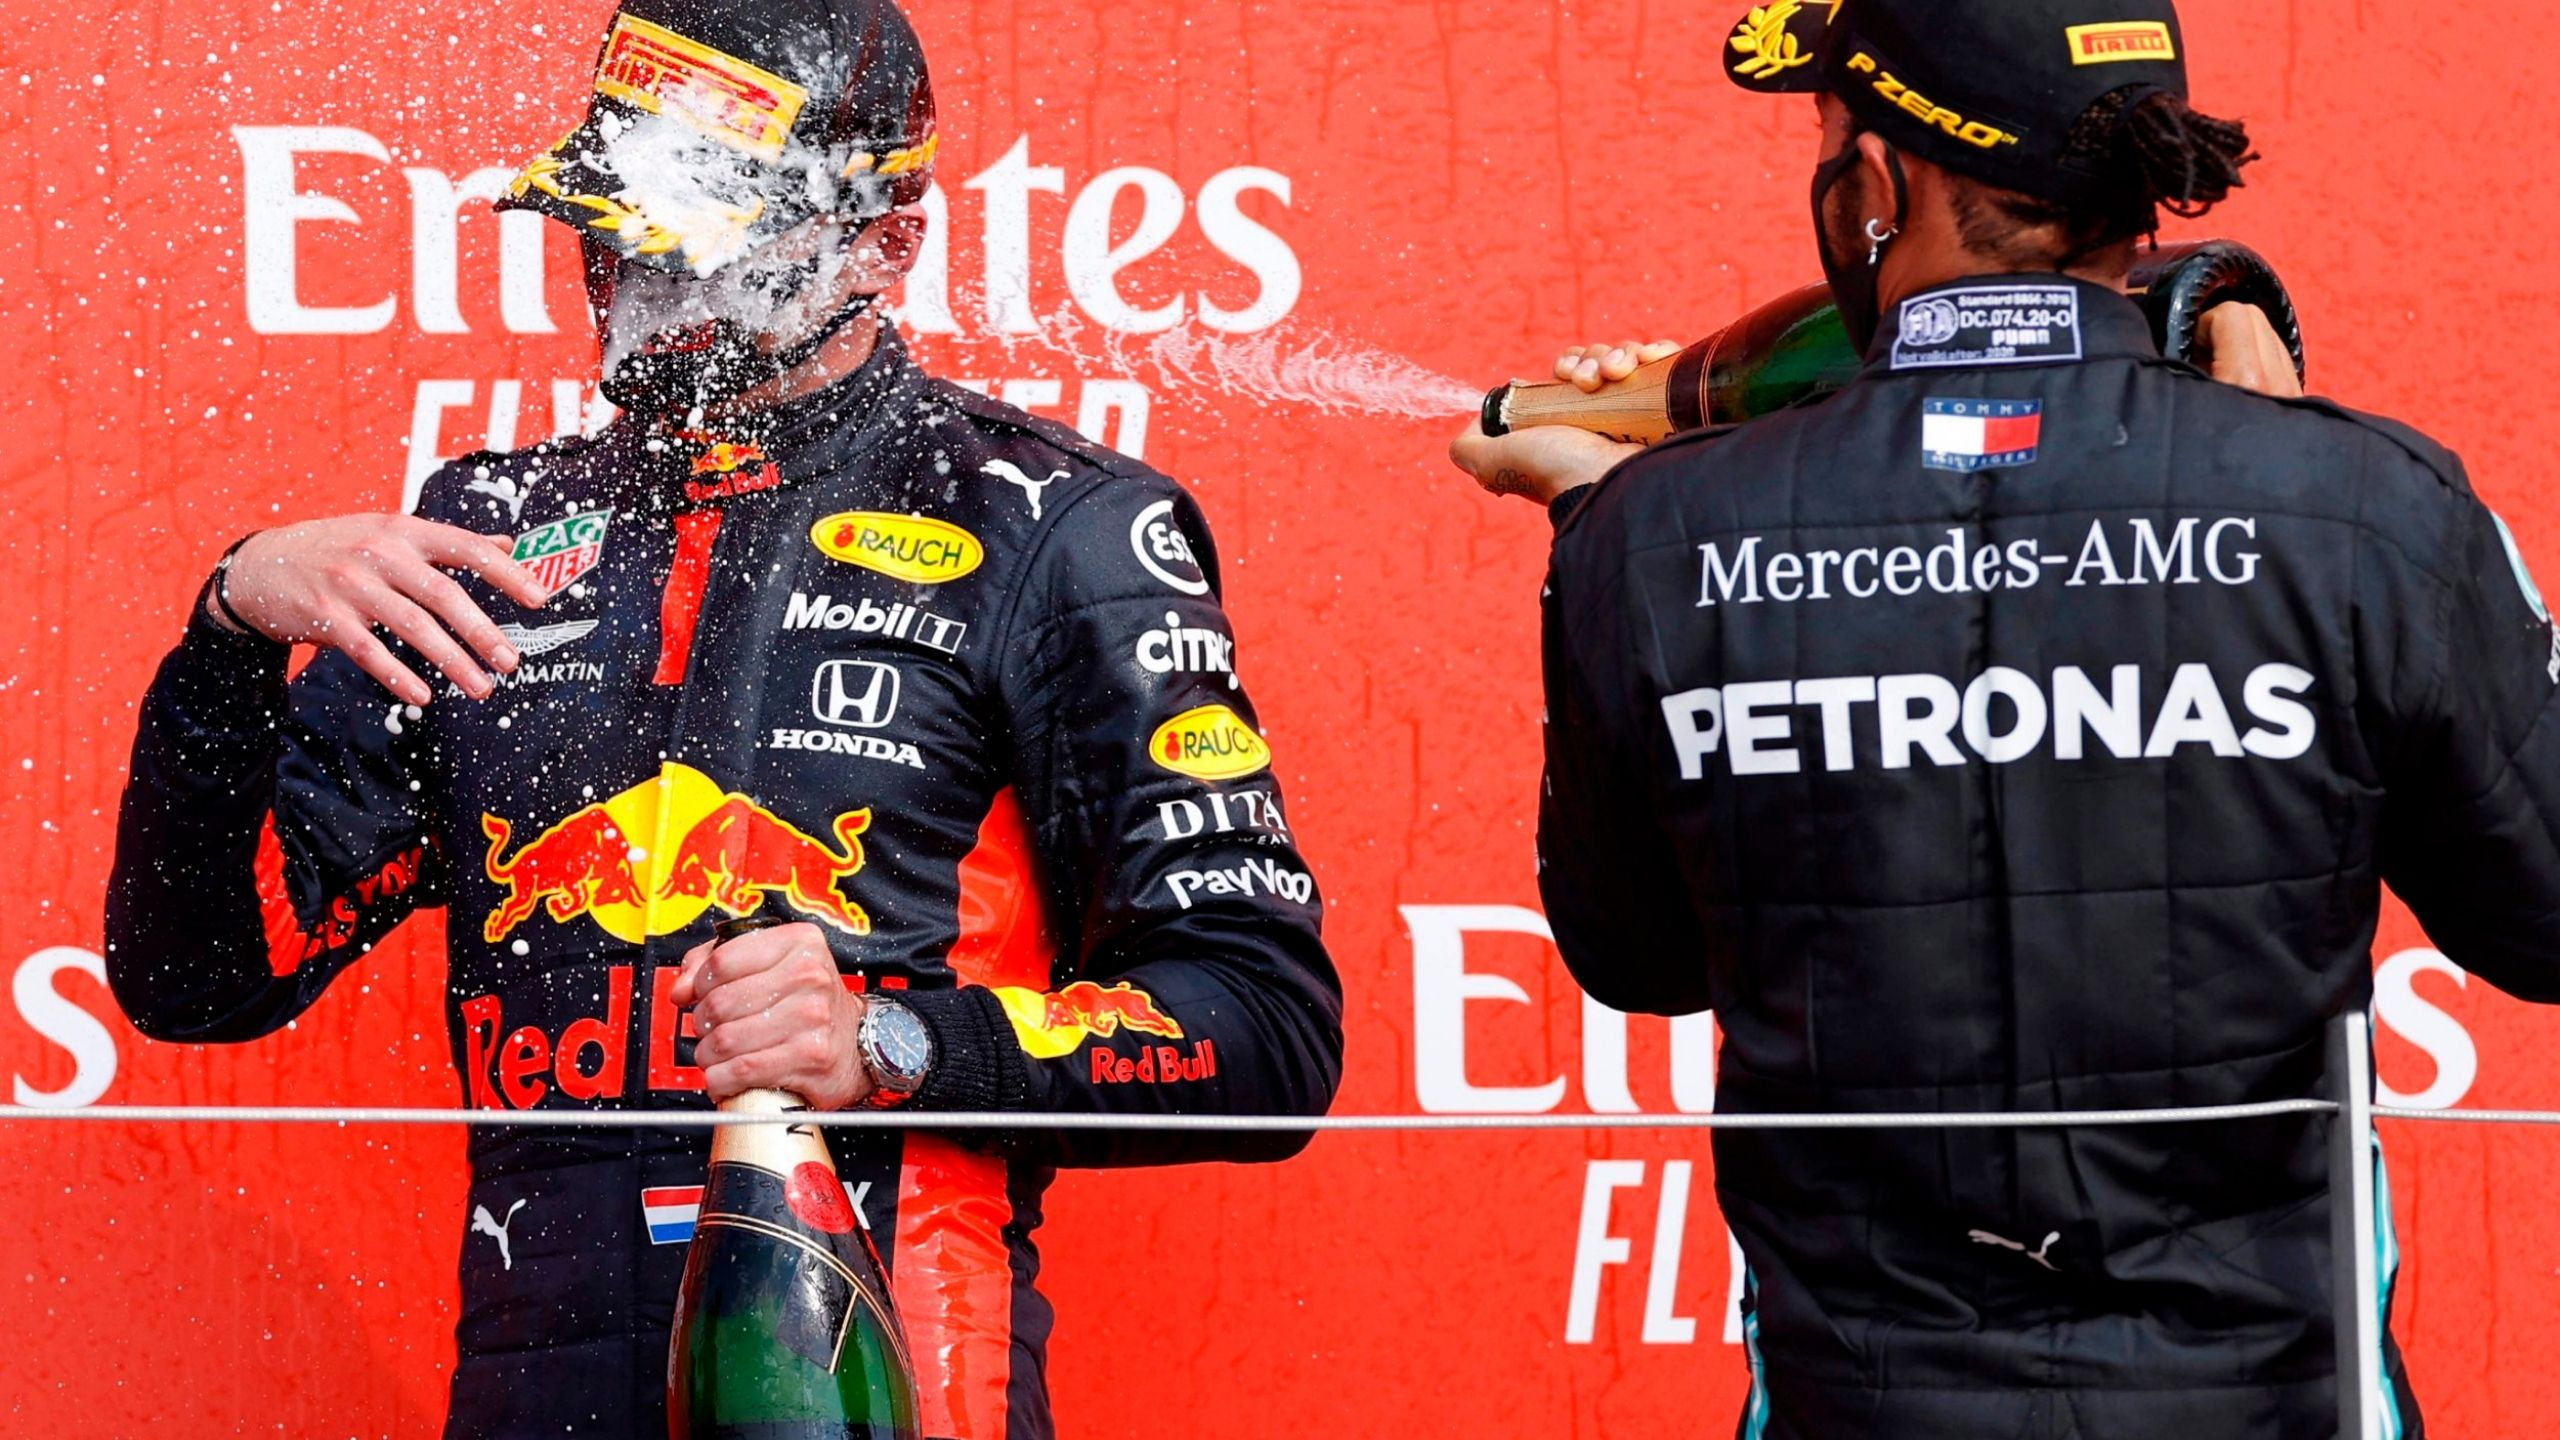 """""""It was really enjoyable out there today"""" - Max Verstappen has the last laugh as he beats Mercedes to win the Abu Dhabi Grand Prix"""